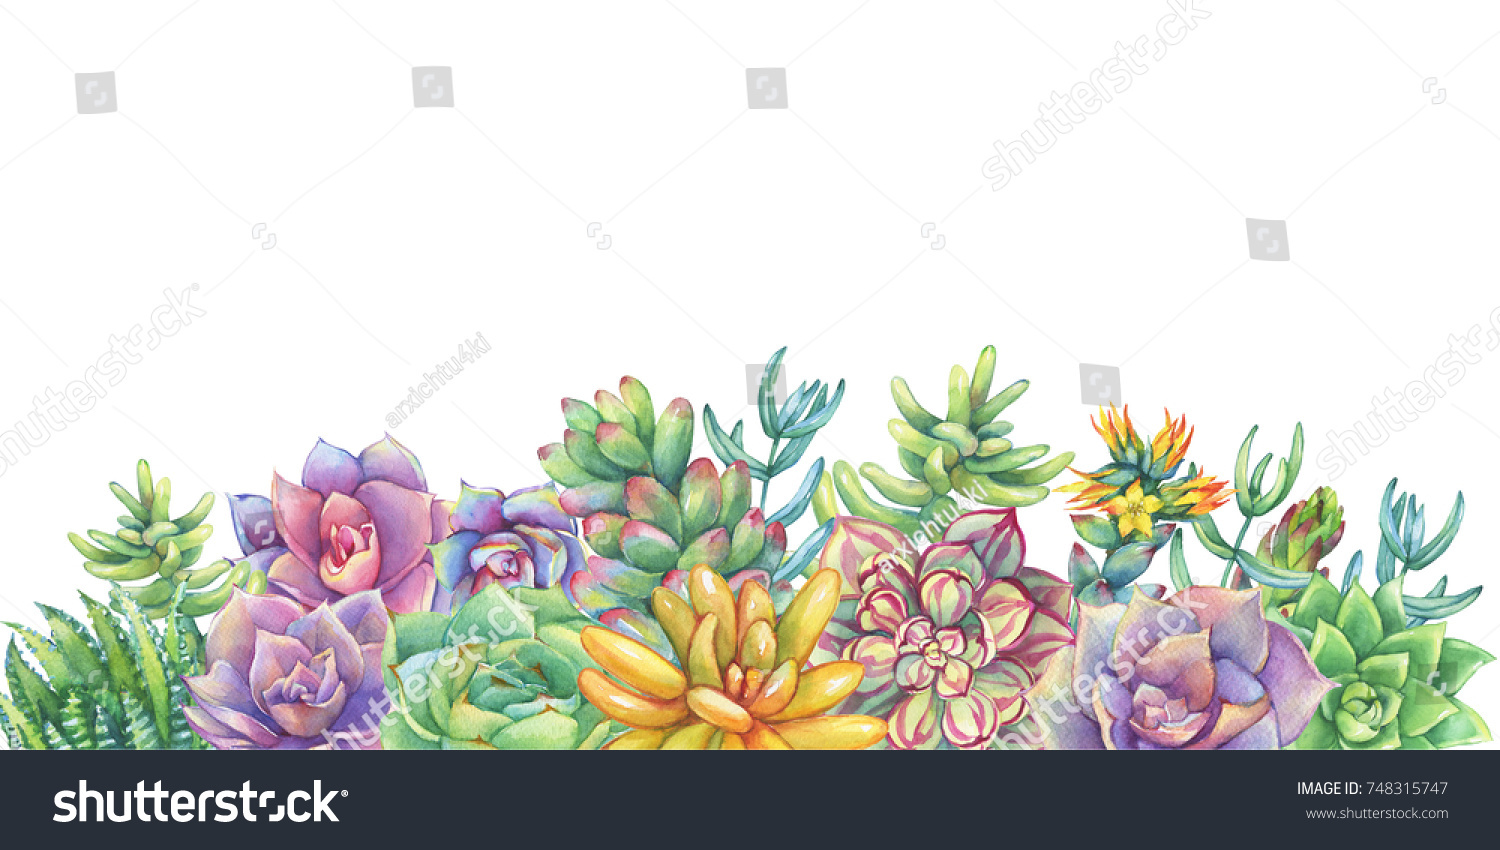 Royalty Free Stock Illustration of Greeting Card Border Frame Leaves ...